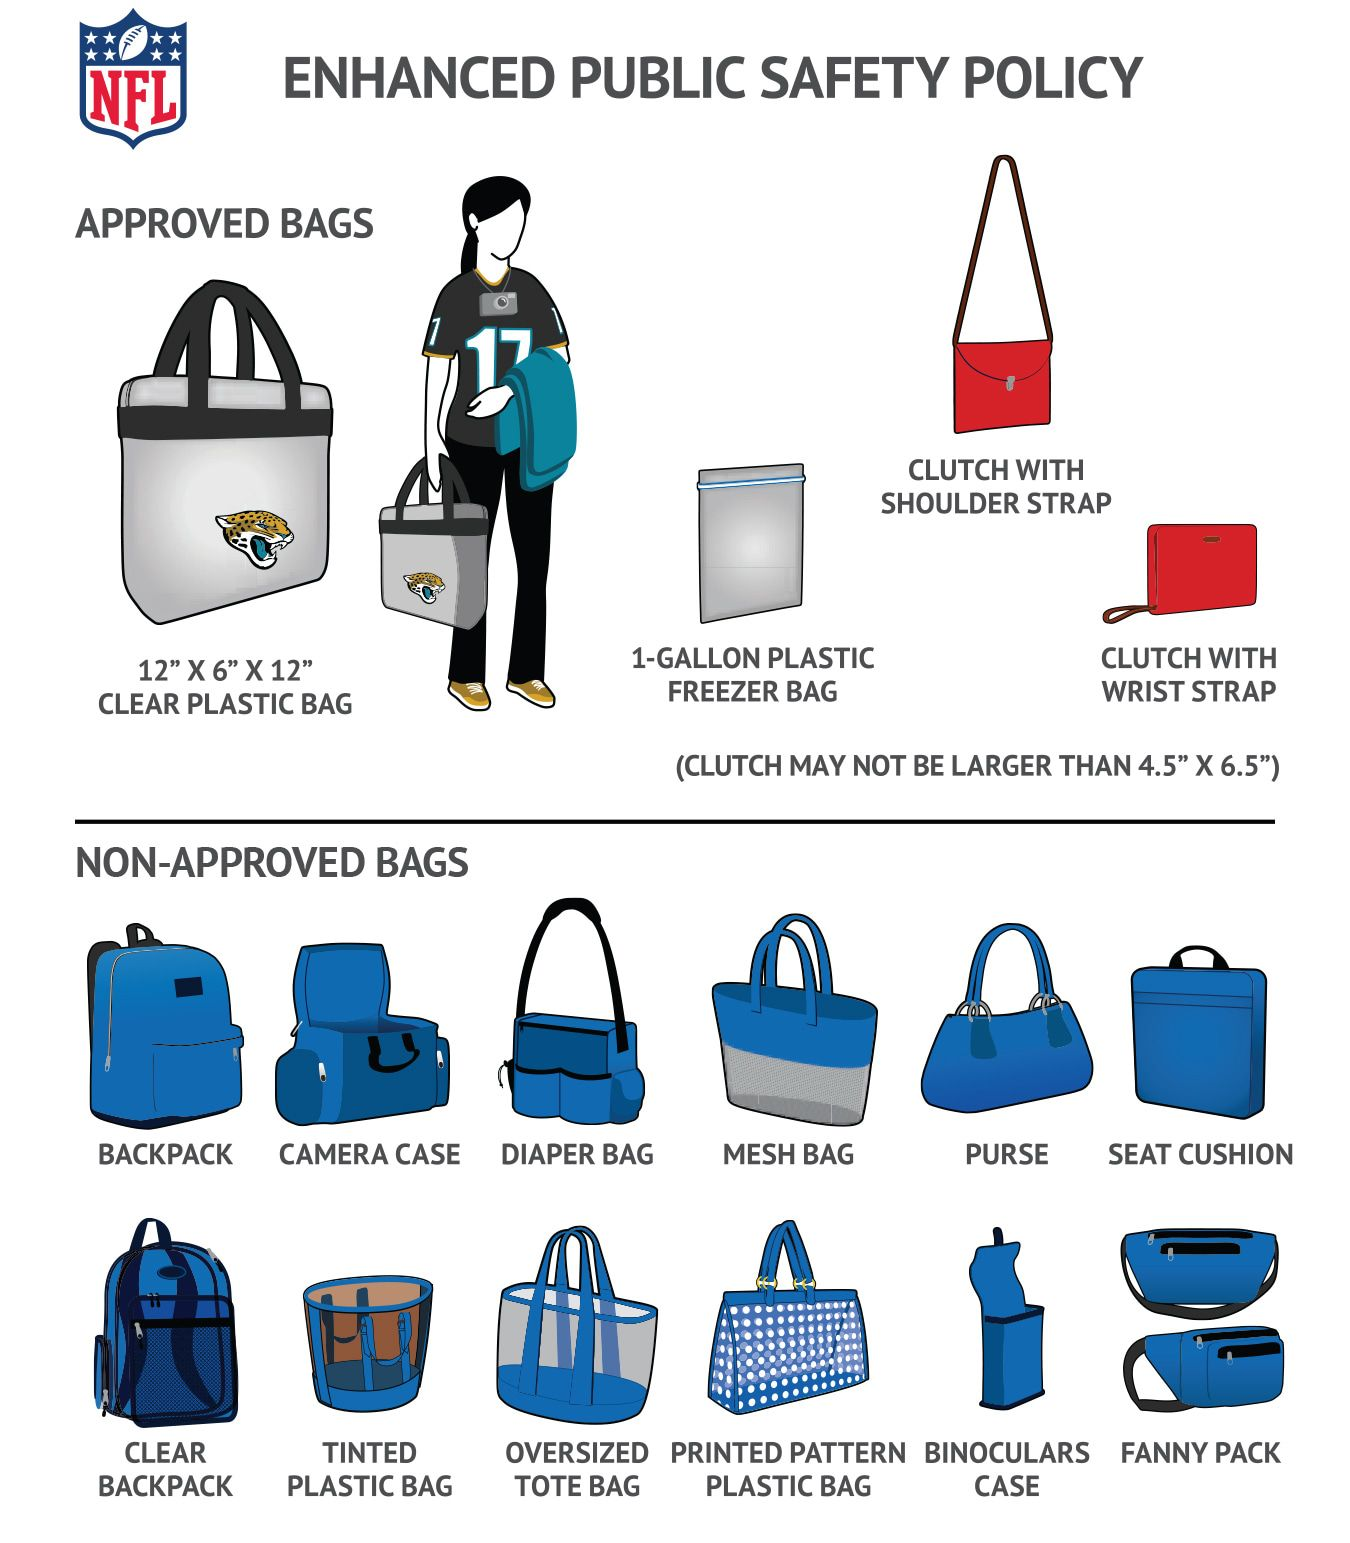 This Everything You Need To Know About The Nfl All Clear Policy Nflallclear Feature Bag Sizing And Lots Of Types Plus Clear Bags Clear Plastic Bags Cinch Bag